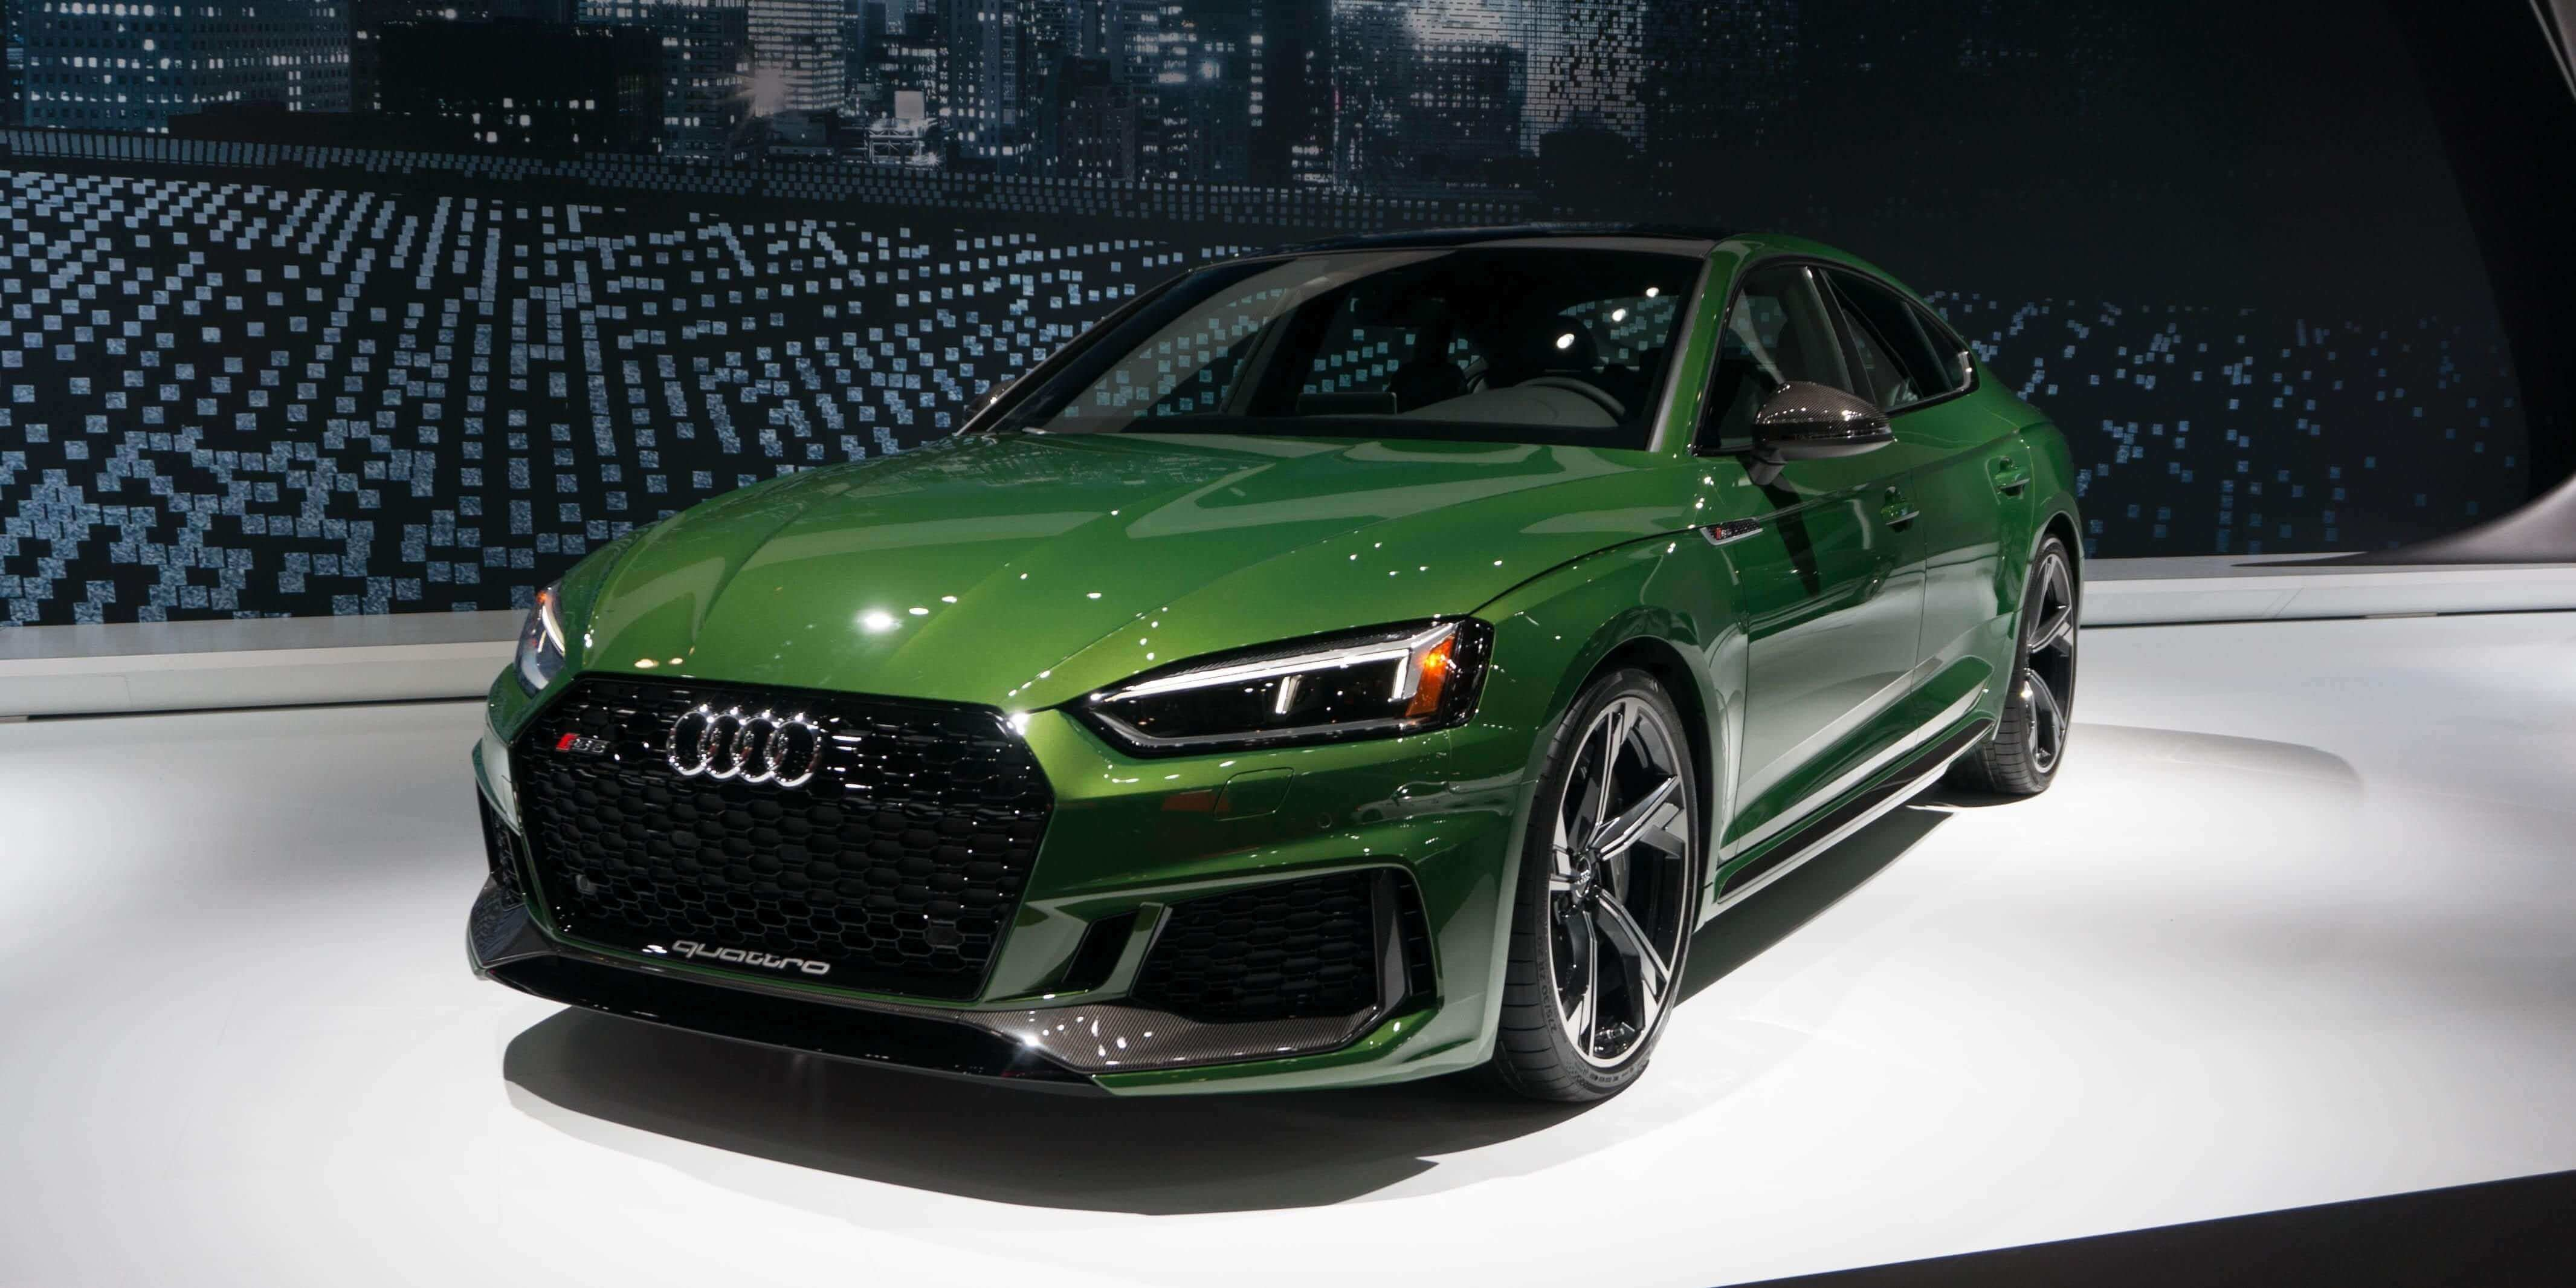 New 2019 2020 Audi Rs5 Release Date Usa Tag 2019 2020 Audi On This Month